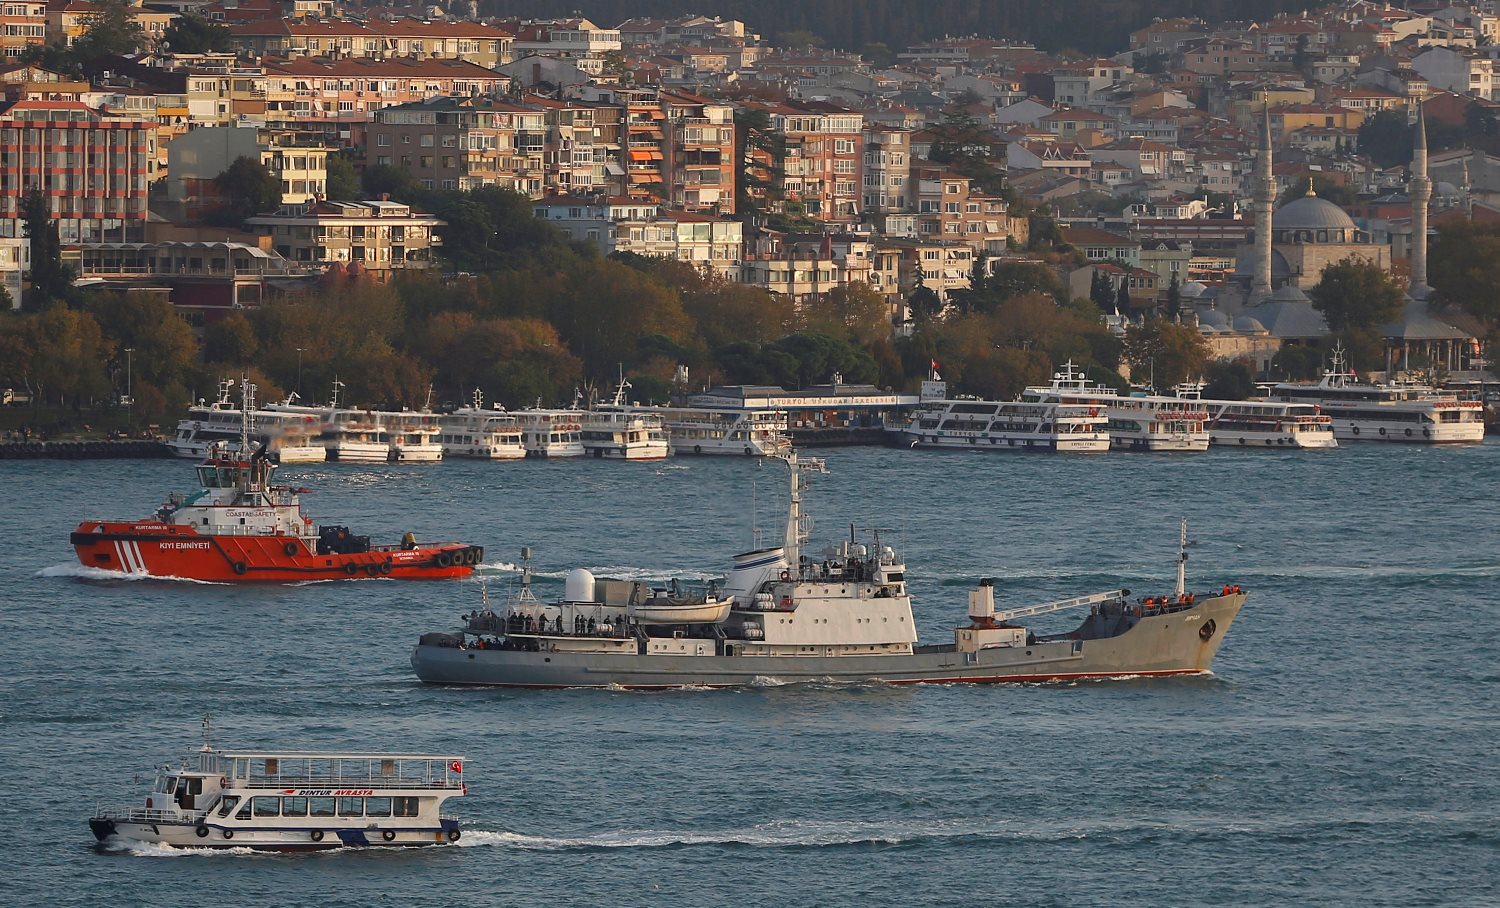 Russian Navy's reconnaissance ship Liman of the Black Sea fleet sails in the Bosphorus, on its way to the Mediterranean Sea, in Istanbul, Oct. 21, 2016.